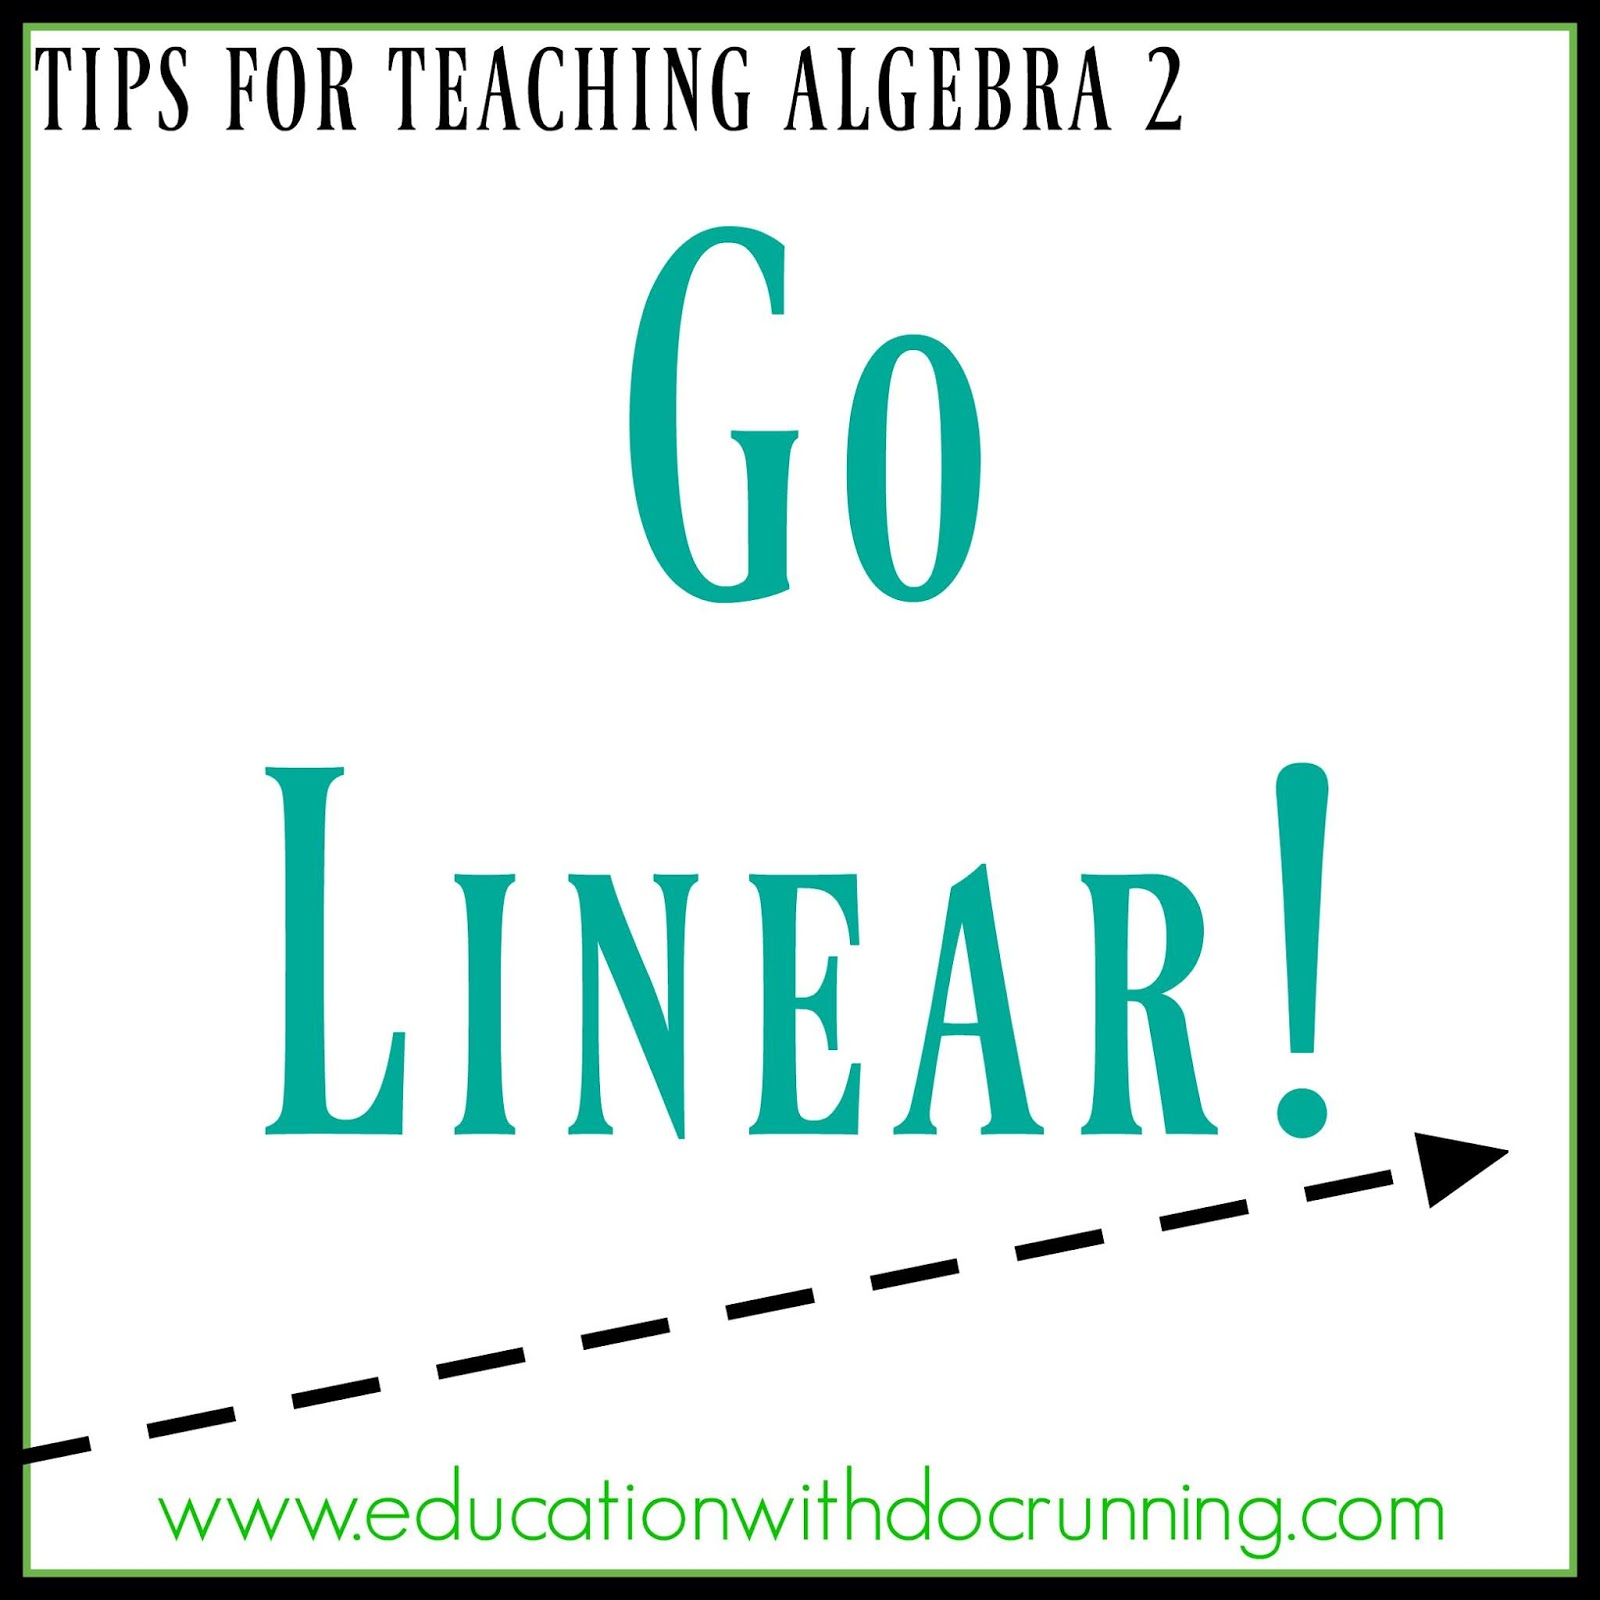 Math Mondays: Going linear in Algebra 2 | Education with DocRunning